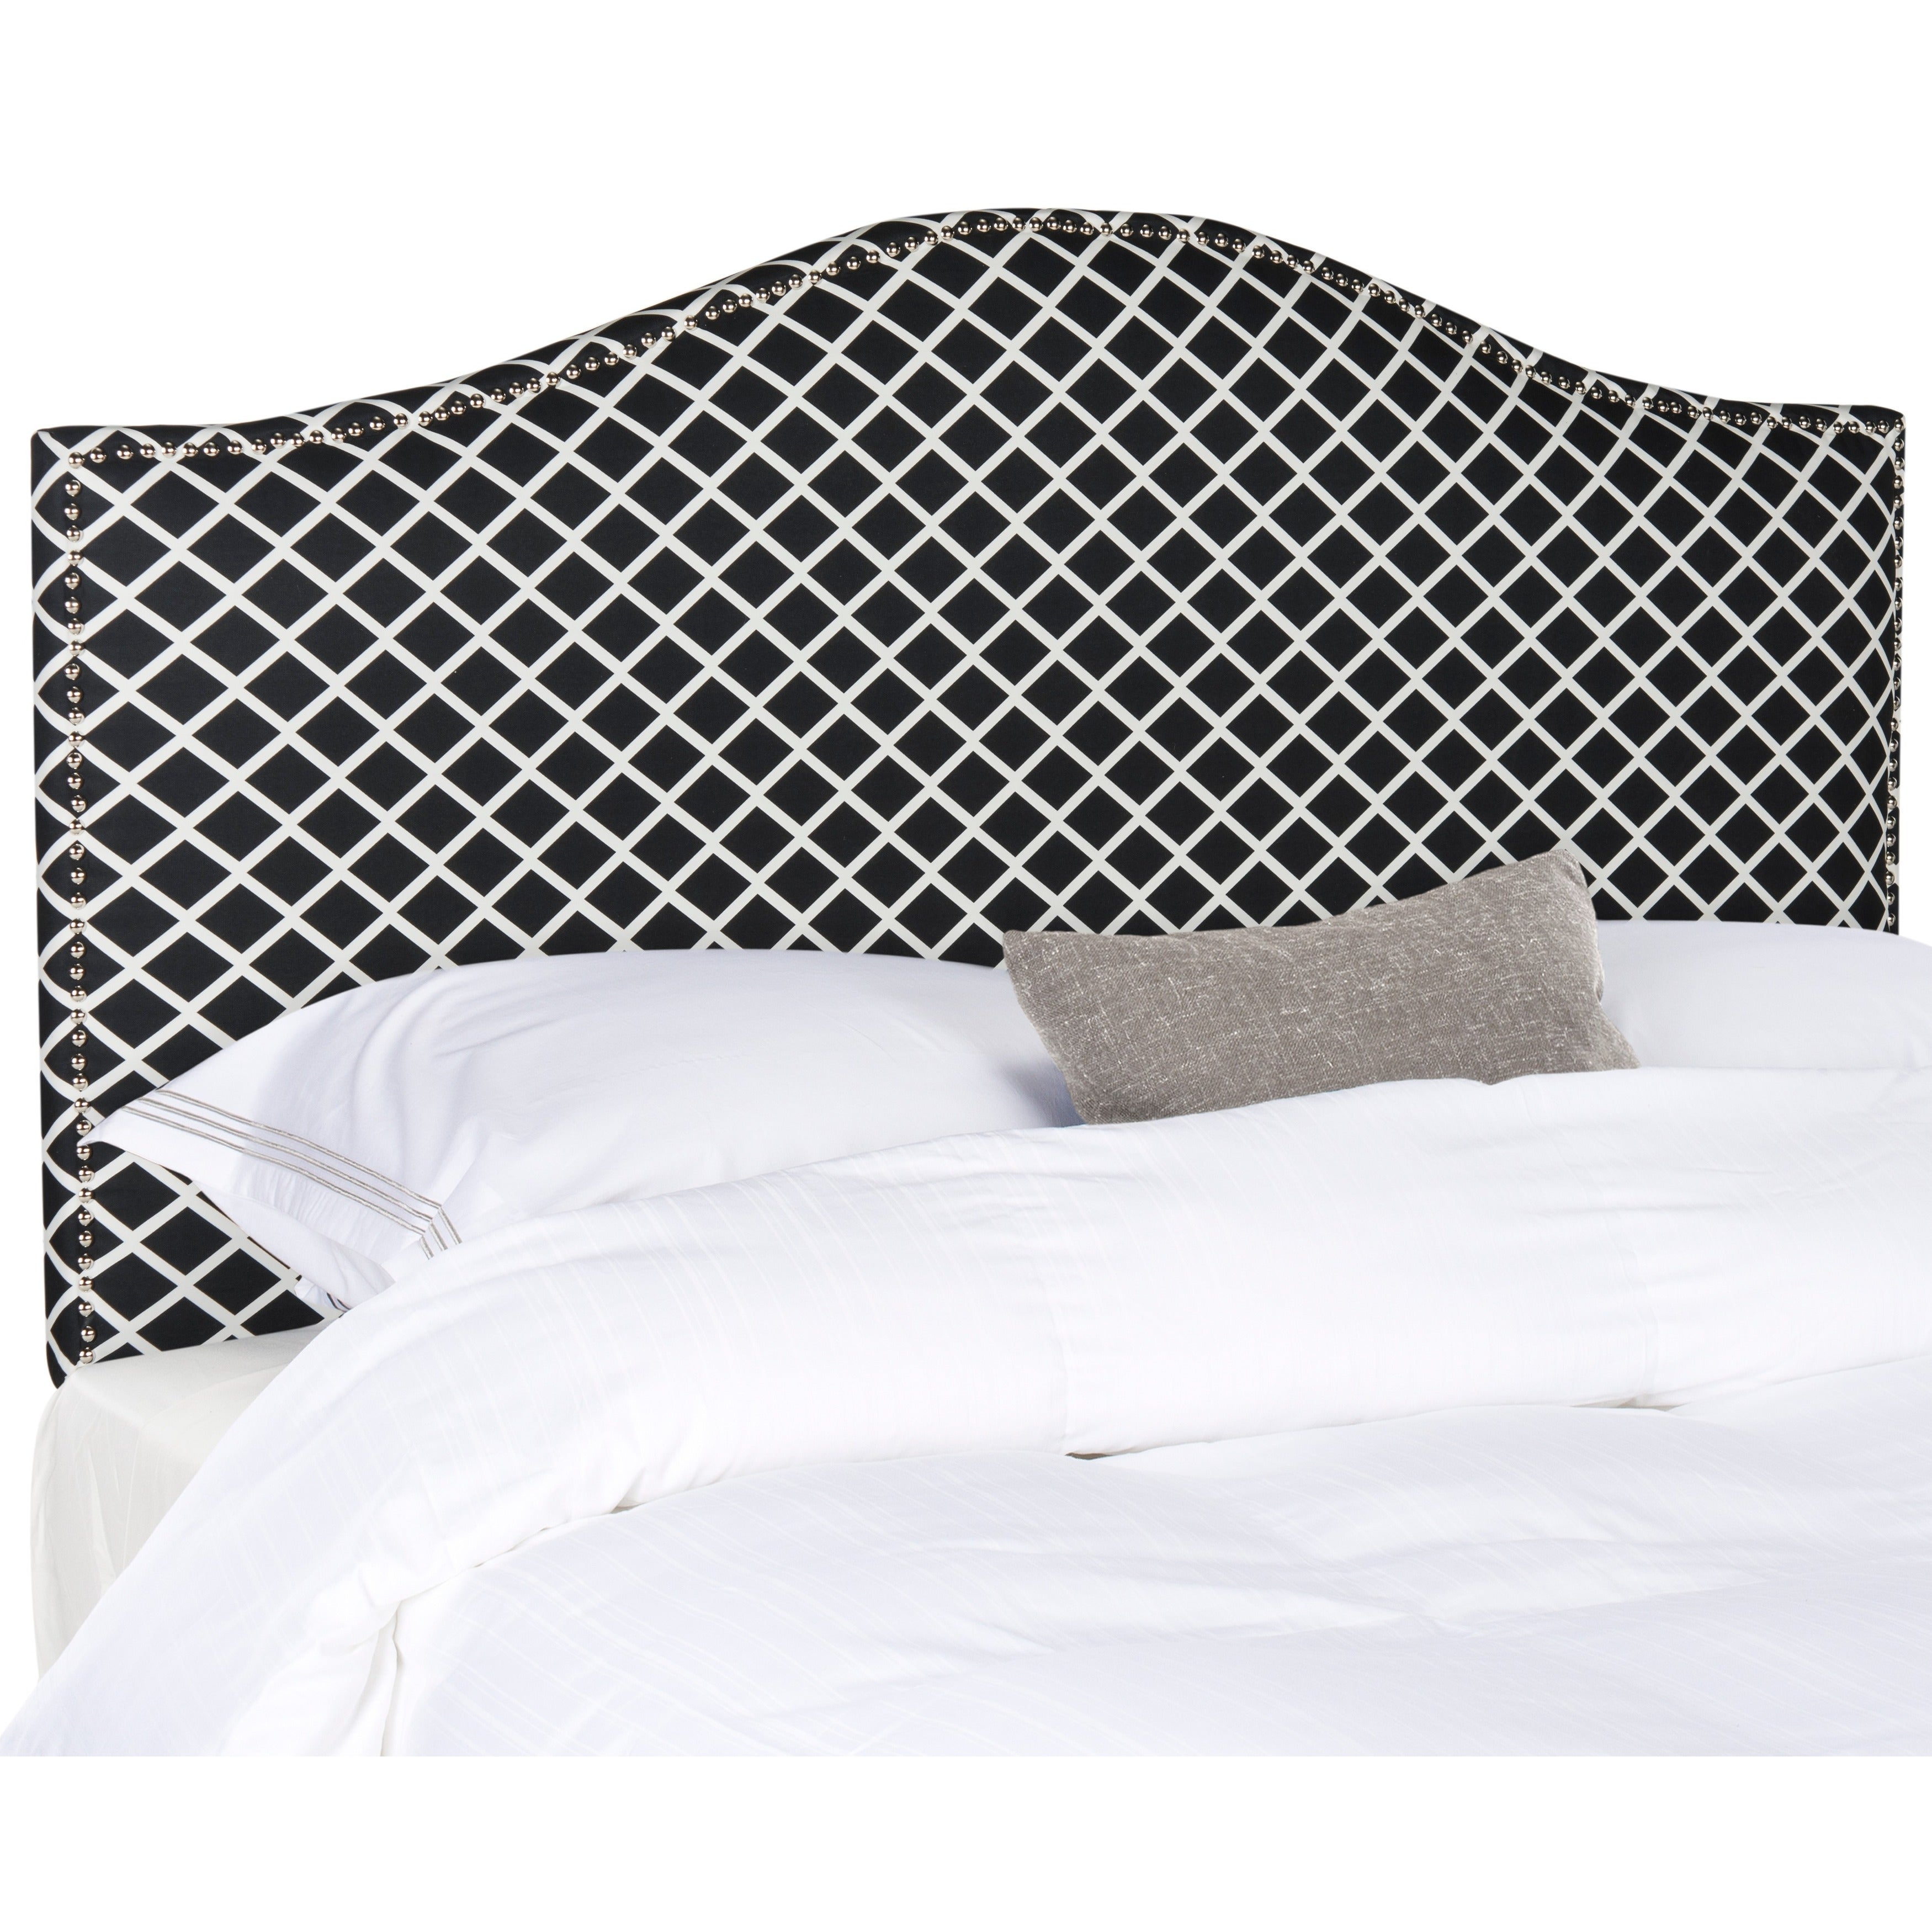 upholstered white appointed house black headboard the and well home five for different luxuries sizes in canopy available